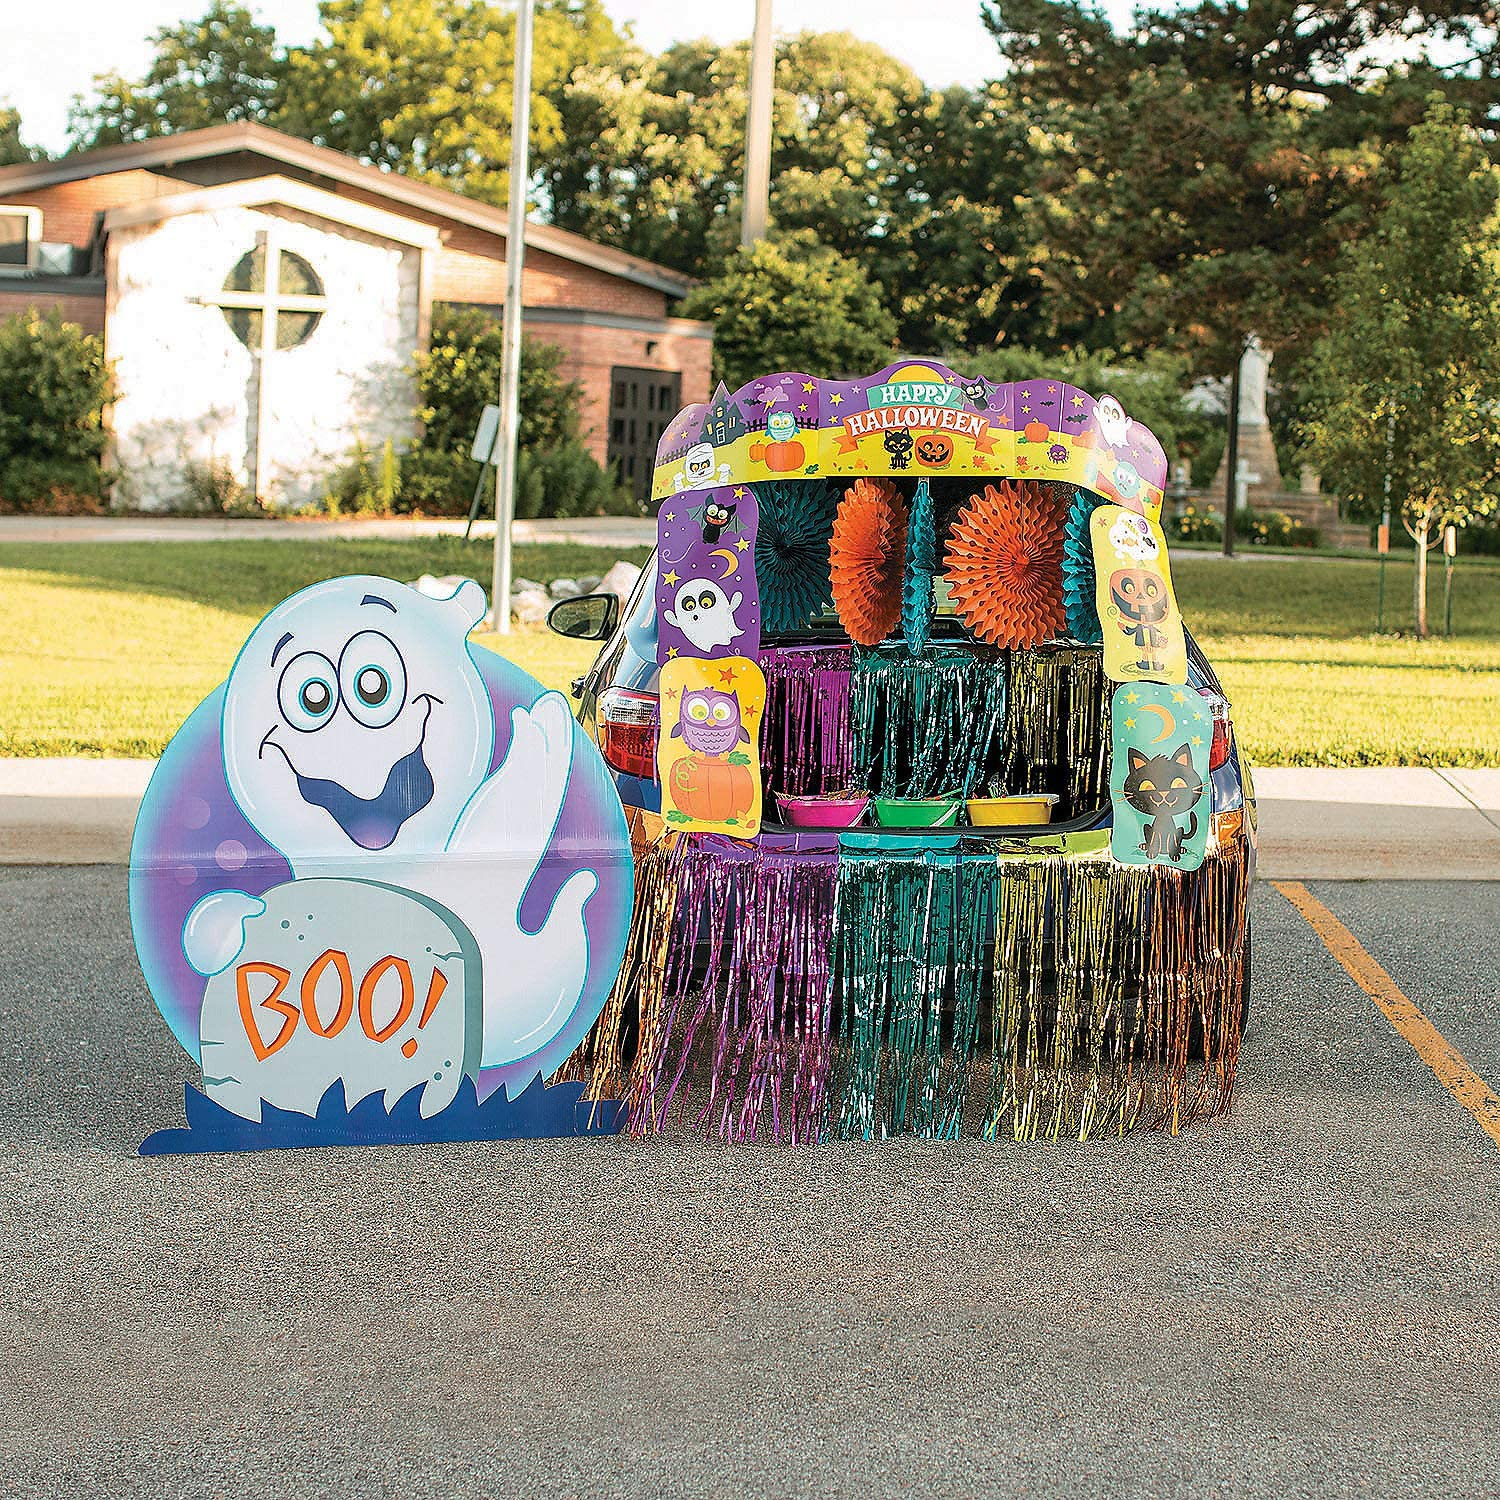 Amazon Com Trunk Or Treat Deluxe Decorating Kit For Halloween Toys Games